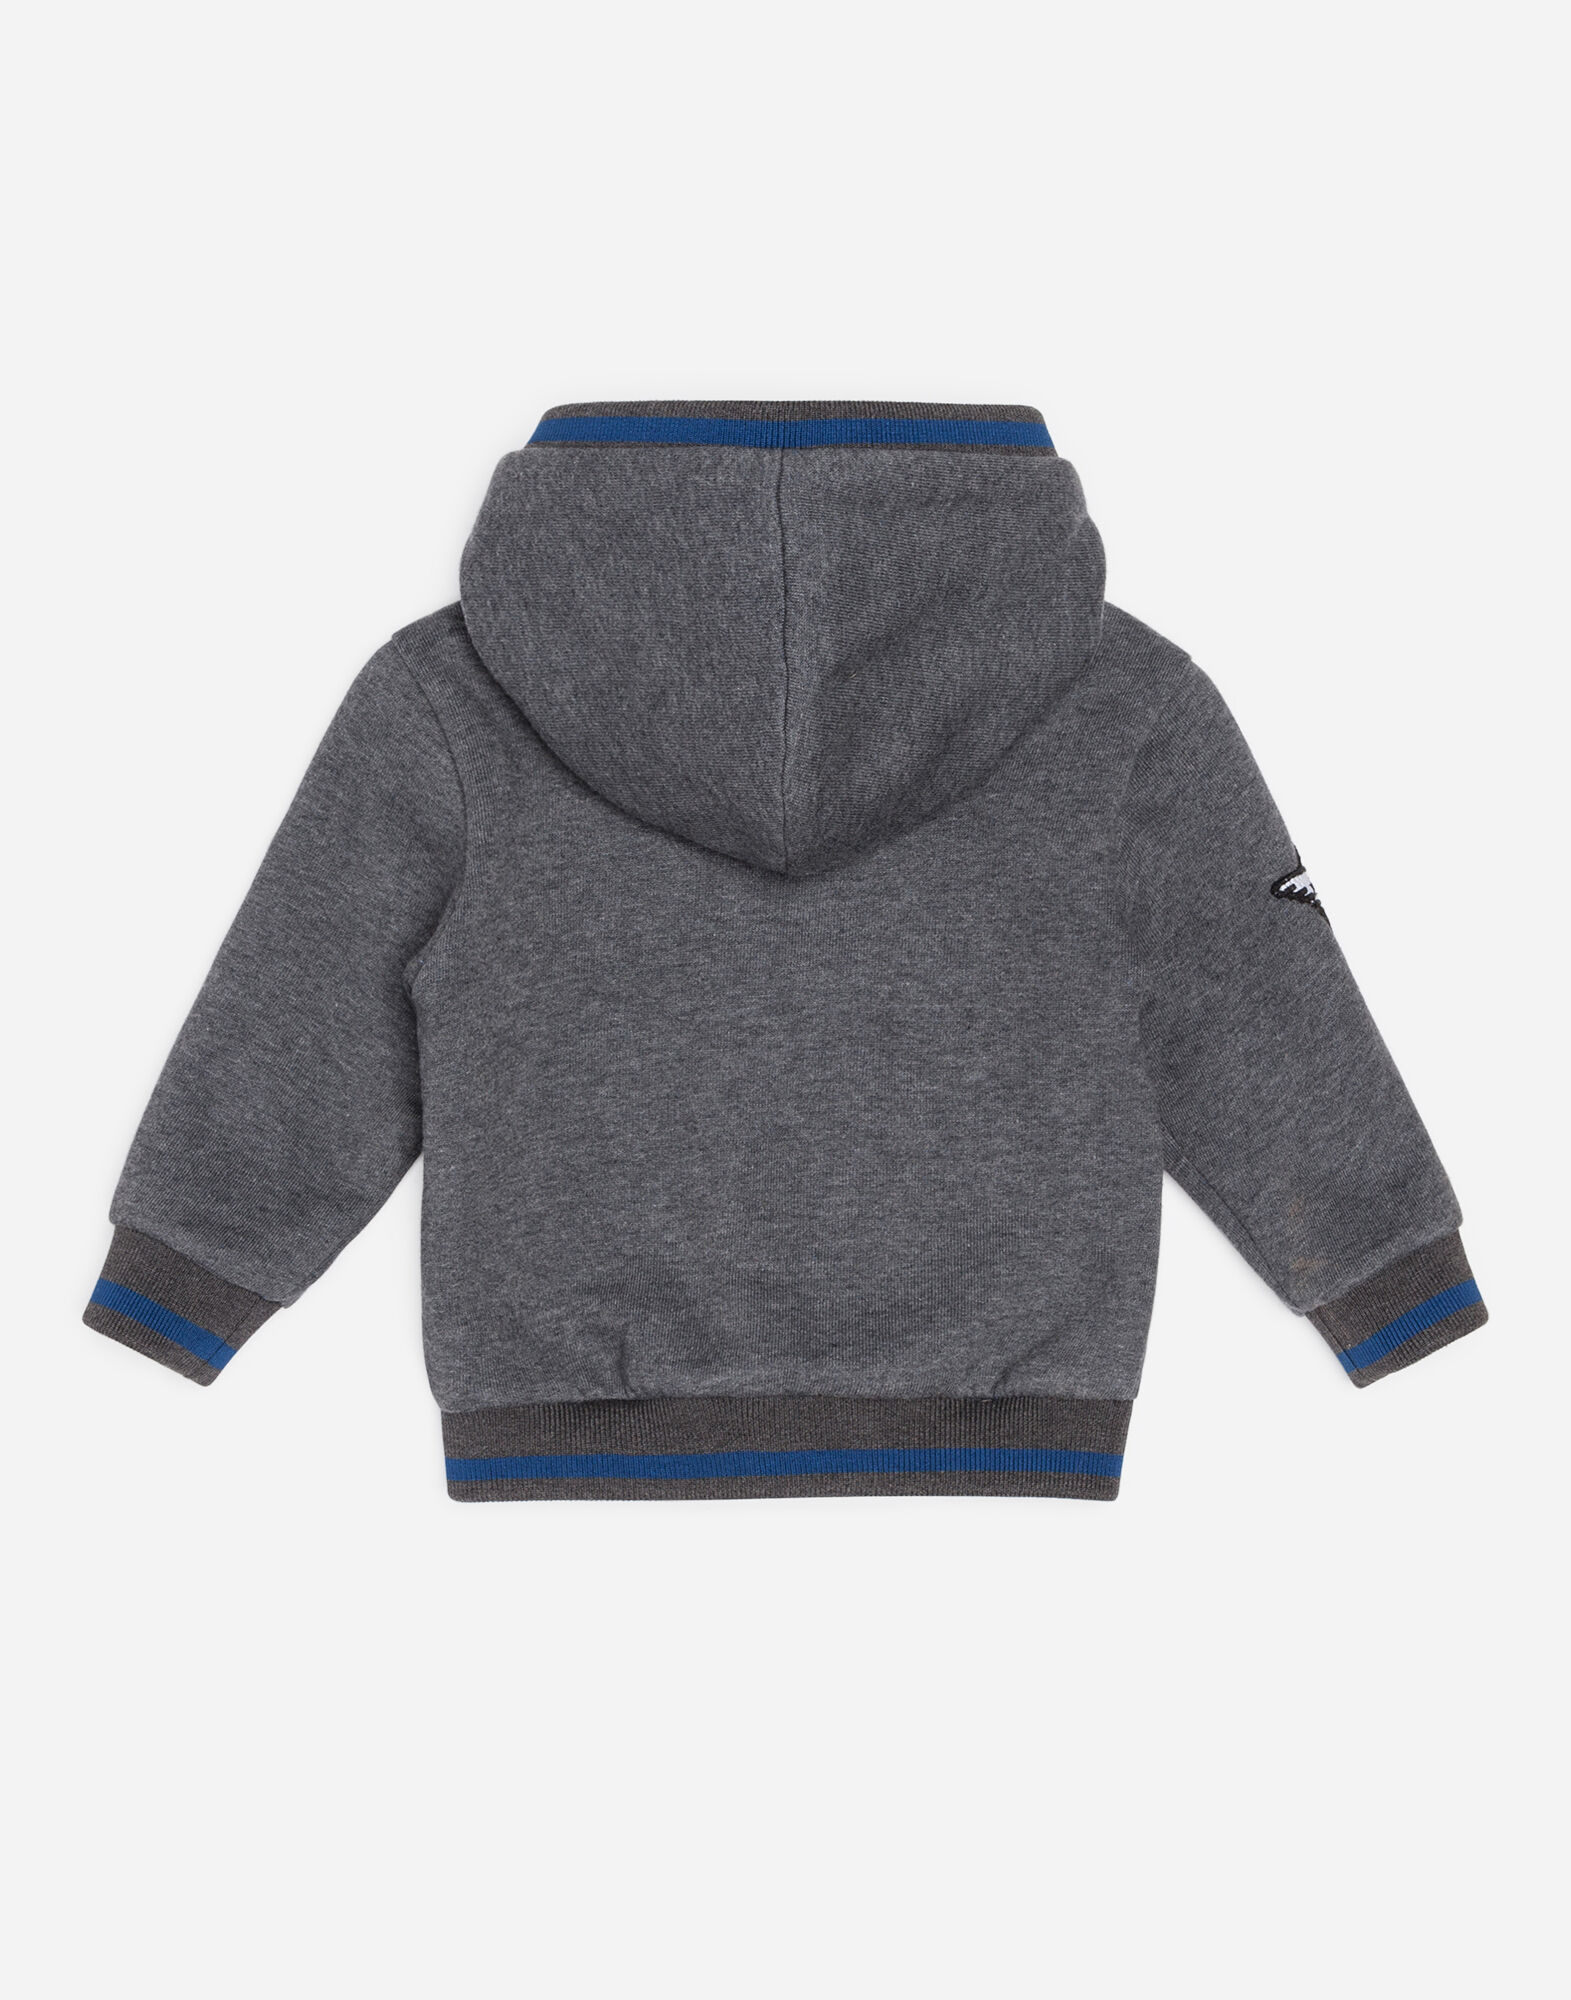 COTTON SWEATER WITH PATCHES